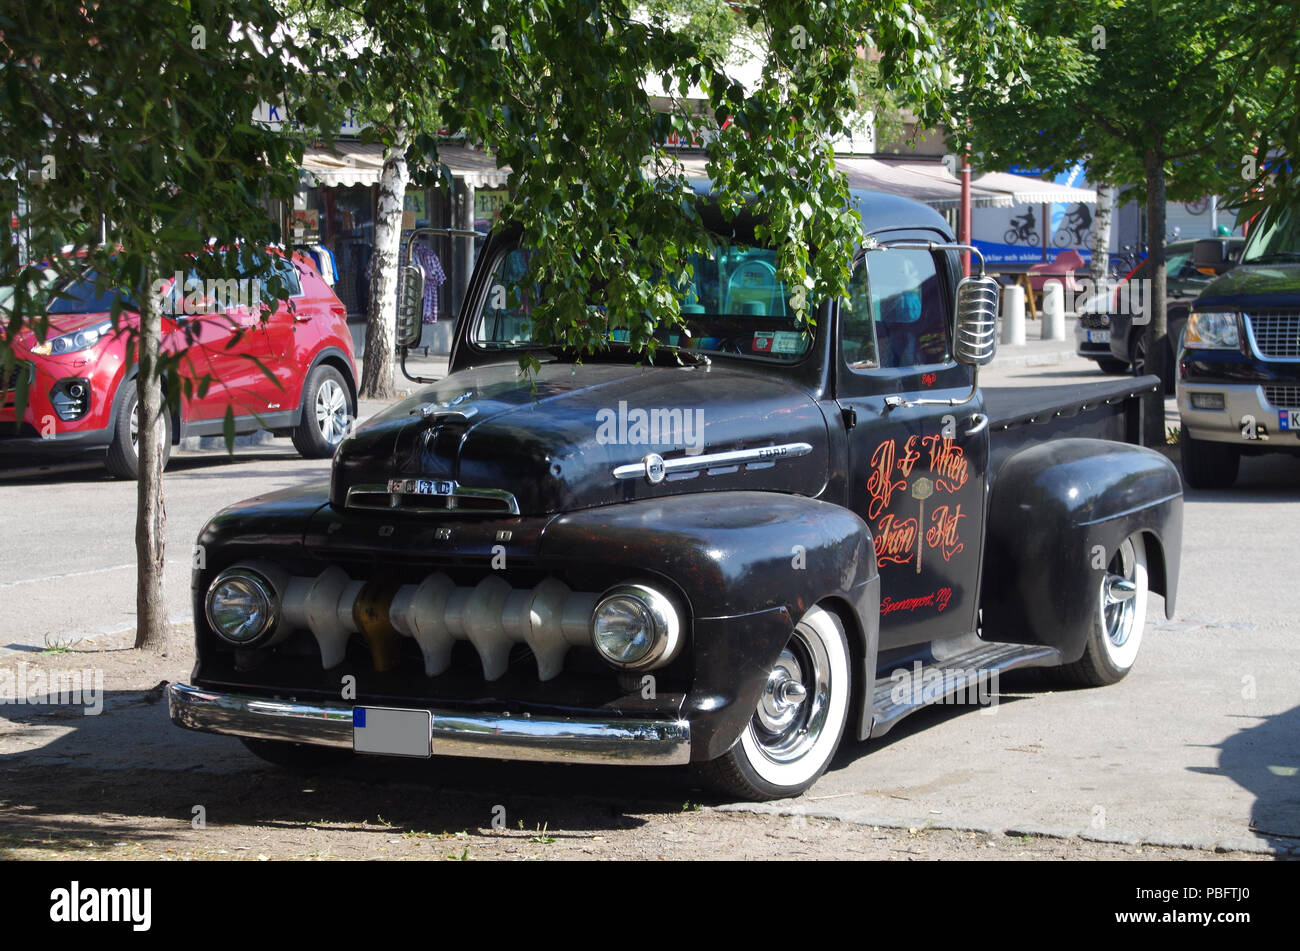 Annual Classic Car Week in Rättvik,Dalarna/Sweden 26.07.2018 - Stock Image